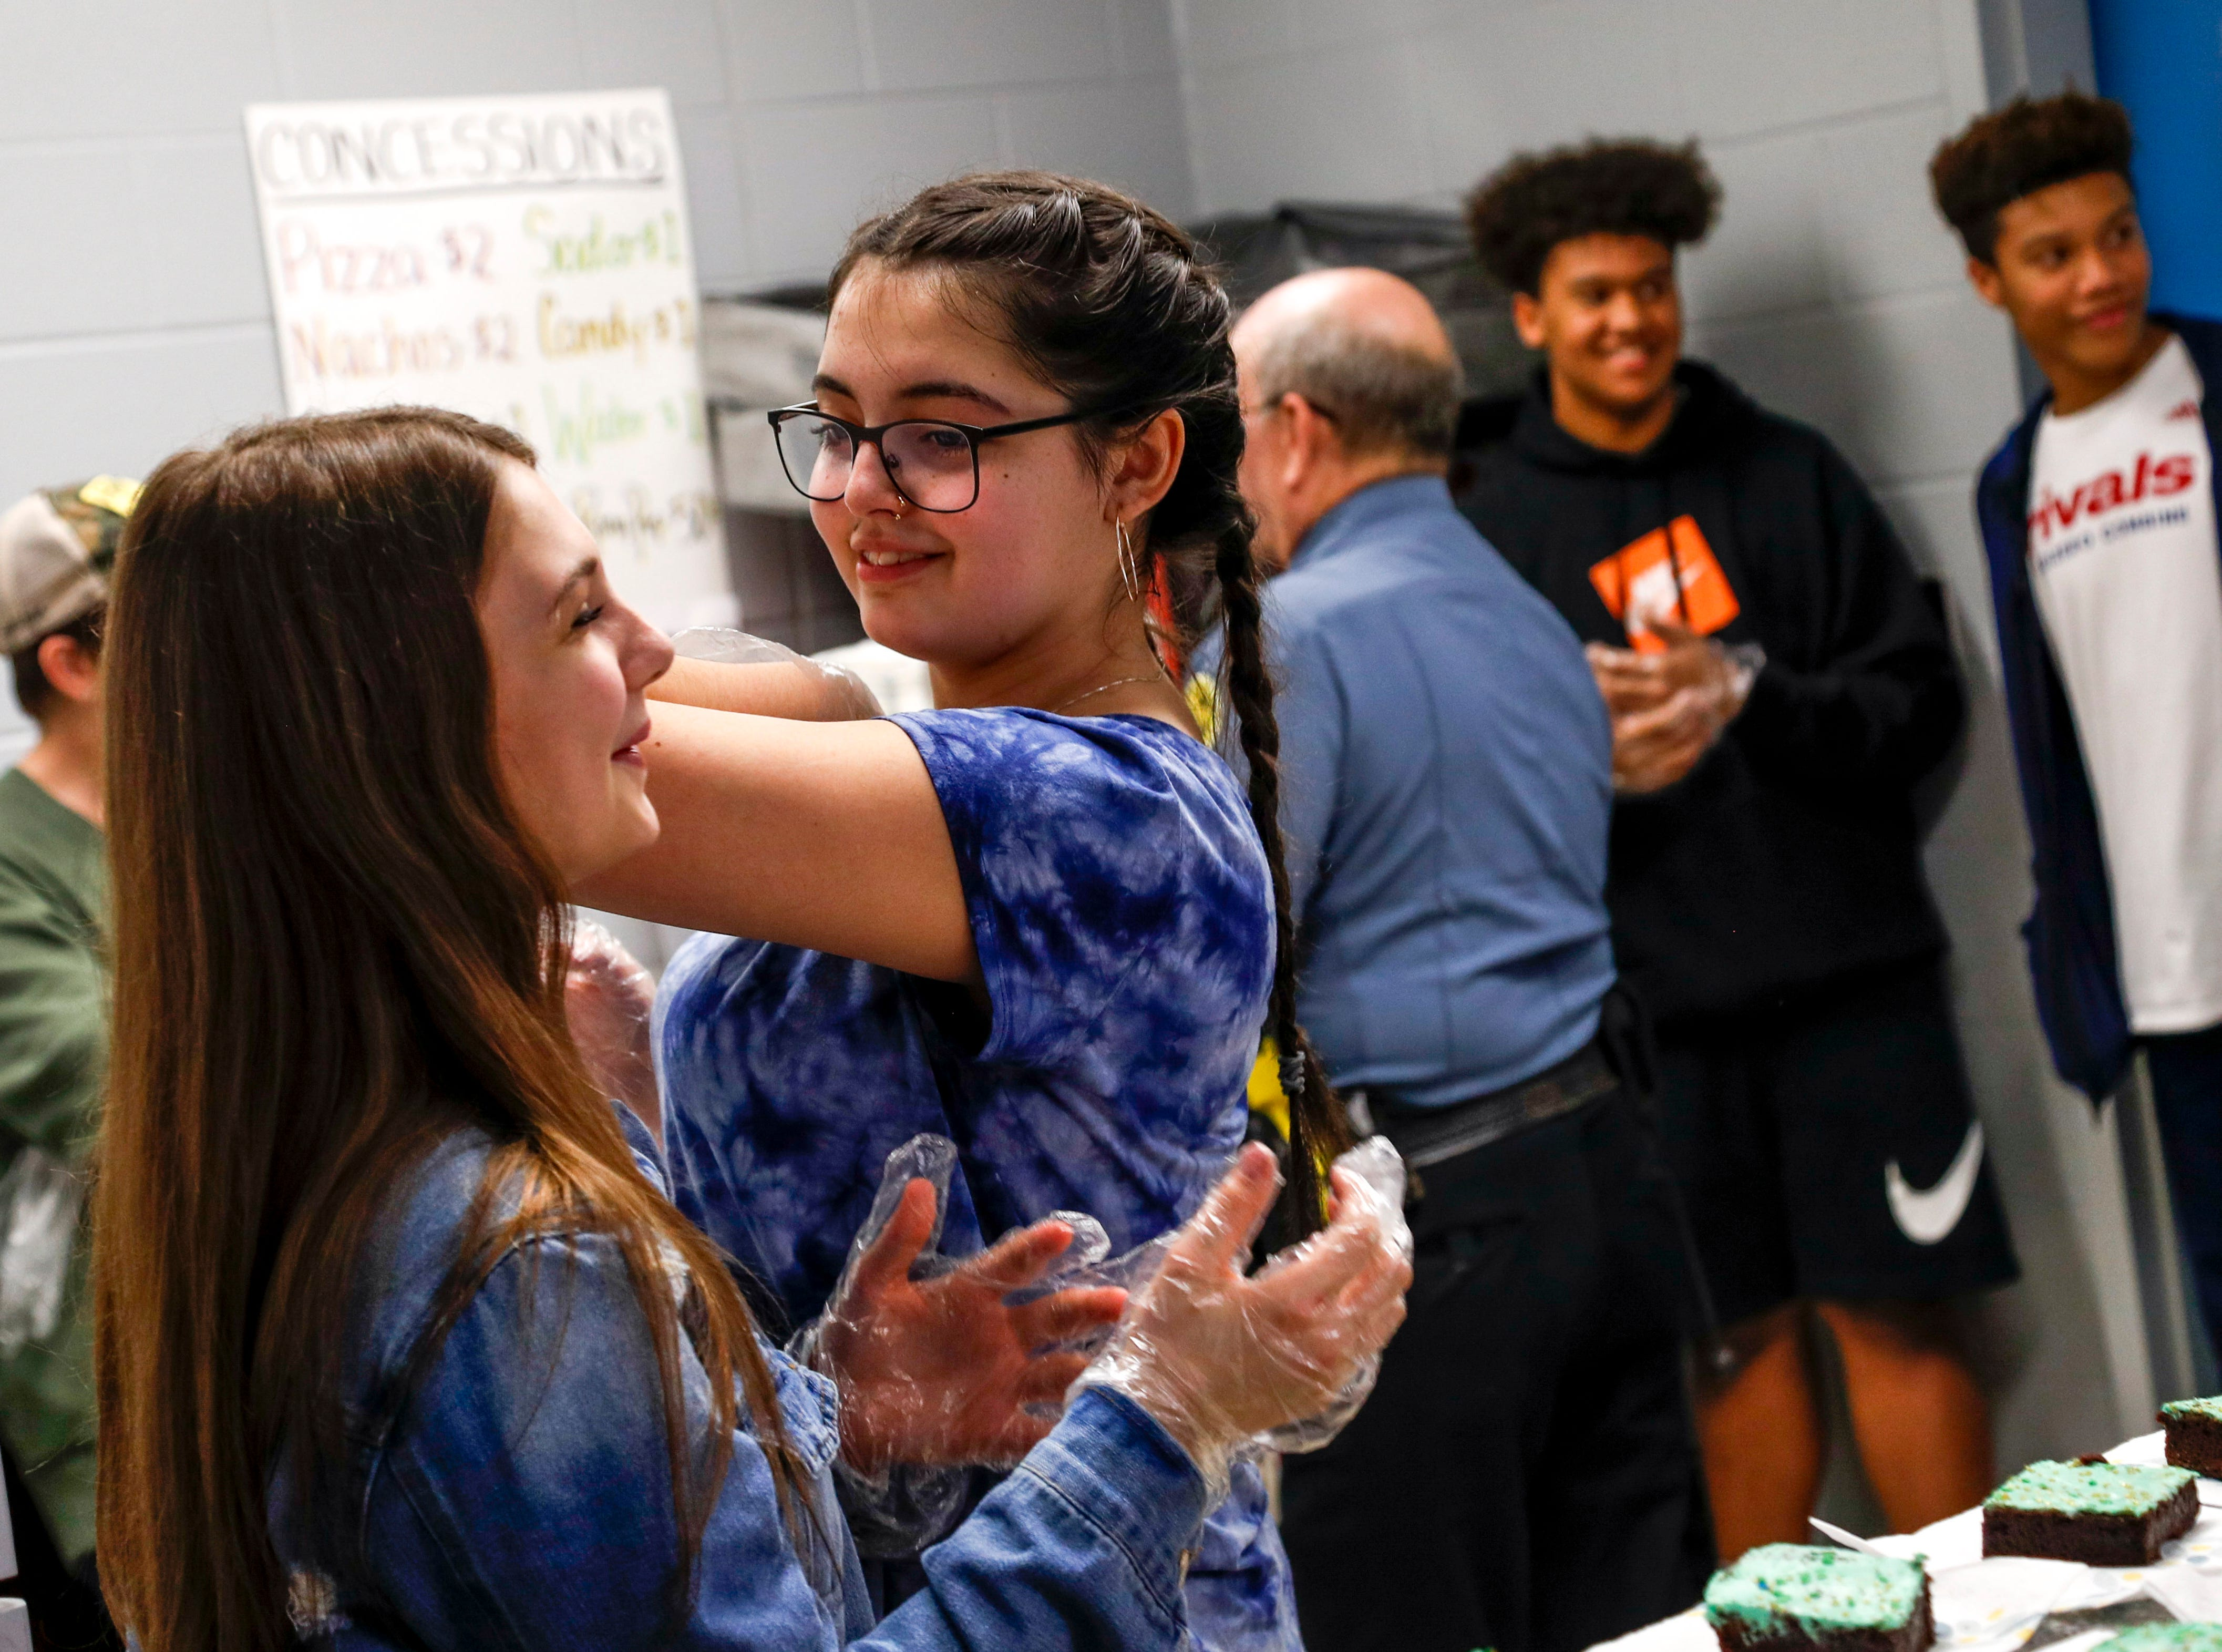 Student helpers chat before the start of the bake sale that will sell over 1200 brownies and profits will go towards the 8th grade dance at Richview Middle School in Clarksville, Tenn., on Friday, March 15, 2019.